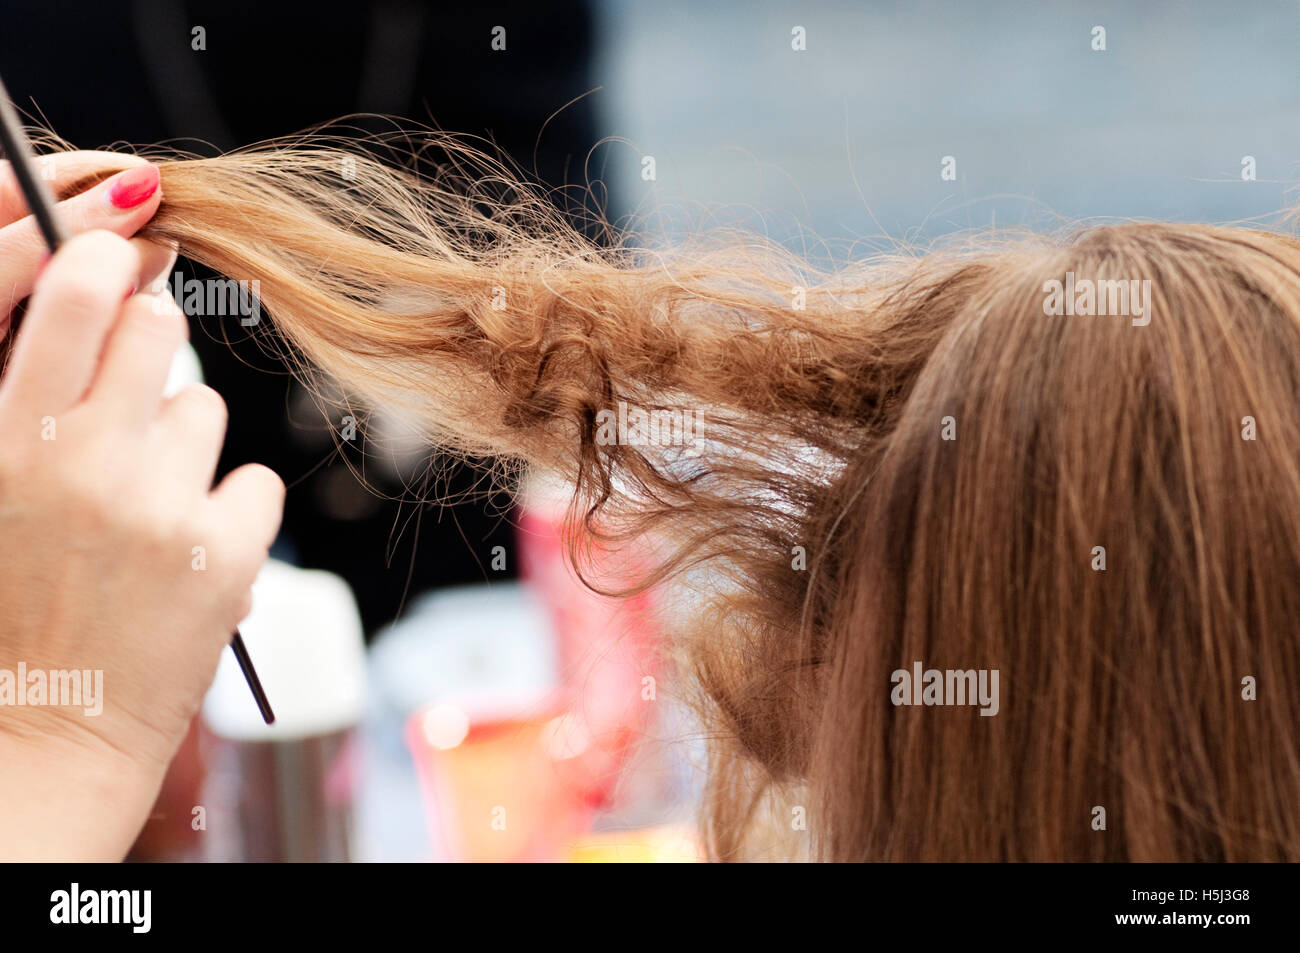 Female Client having a Blow Dry in a Hairdressing Salon Photo Stock